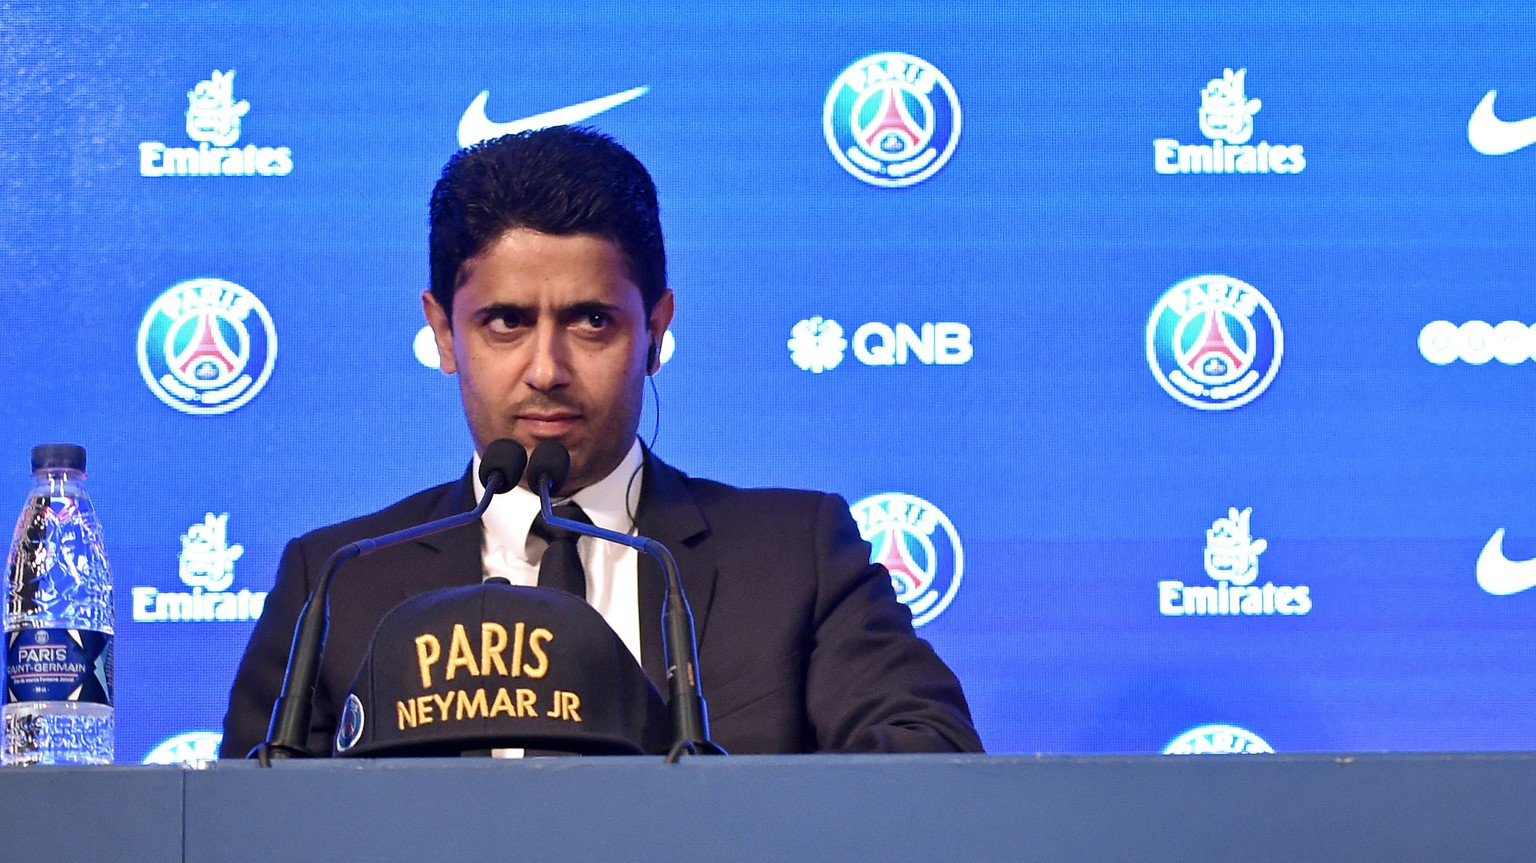 epa06124214 Paris Saint Germain's chairman and CEO Nasser Al-Khelaif (L) and Brazilian striker Neymar Jr (R) speak to media during a press conference at the Parc des Princes stadium in Paris, France, 04 August 2017. Neymar Jr is presented as new player of Paris Saint-Germain (PSG) after completing a record-breaking 222-million-euro move from Spanish side FC Barcelona.  EPA/CHRISTOPHE PETIT TESSON